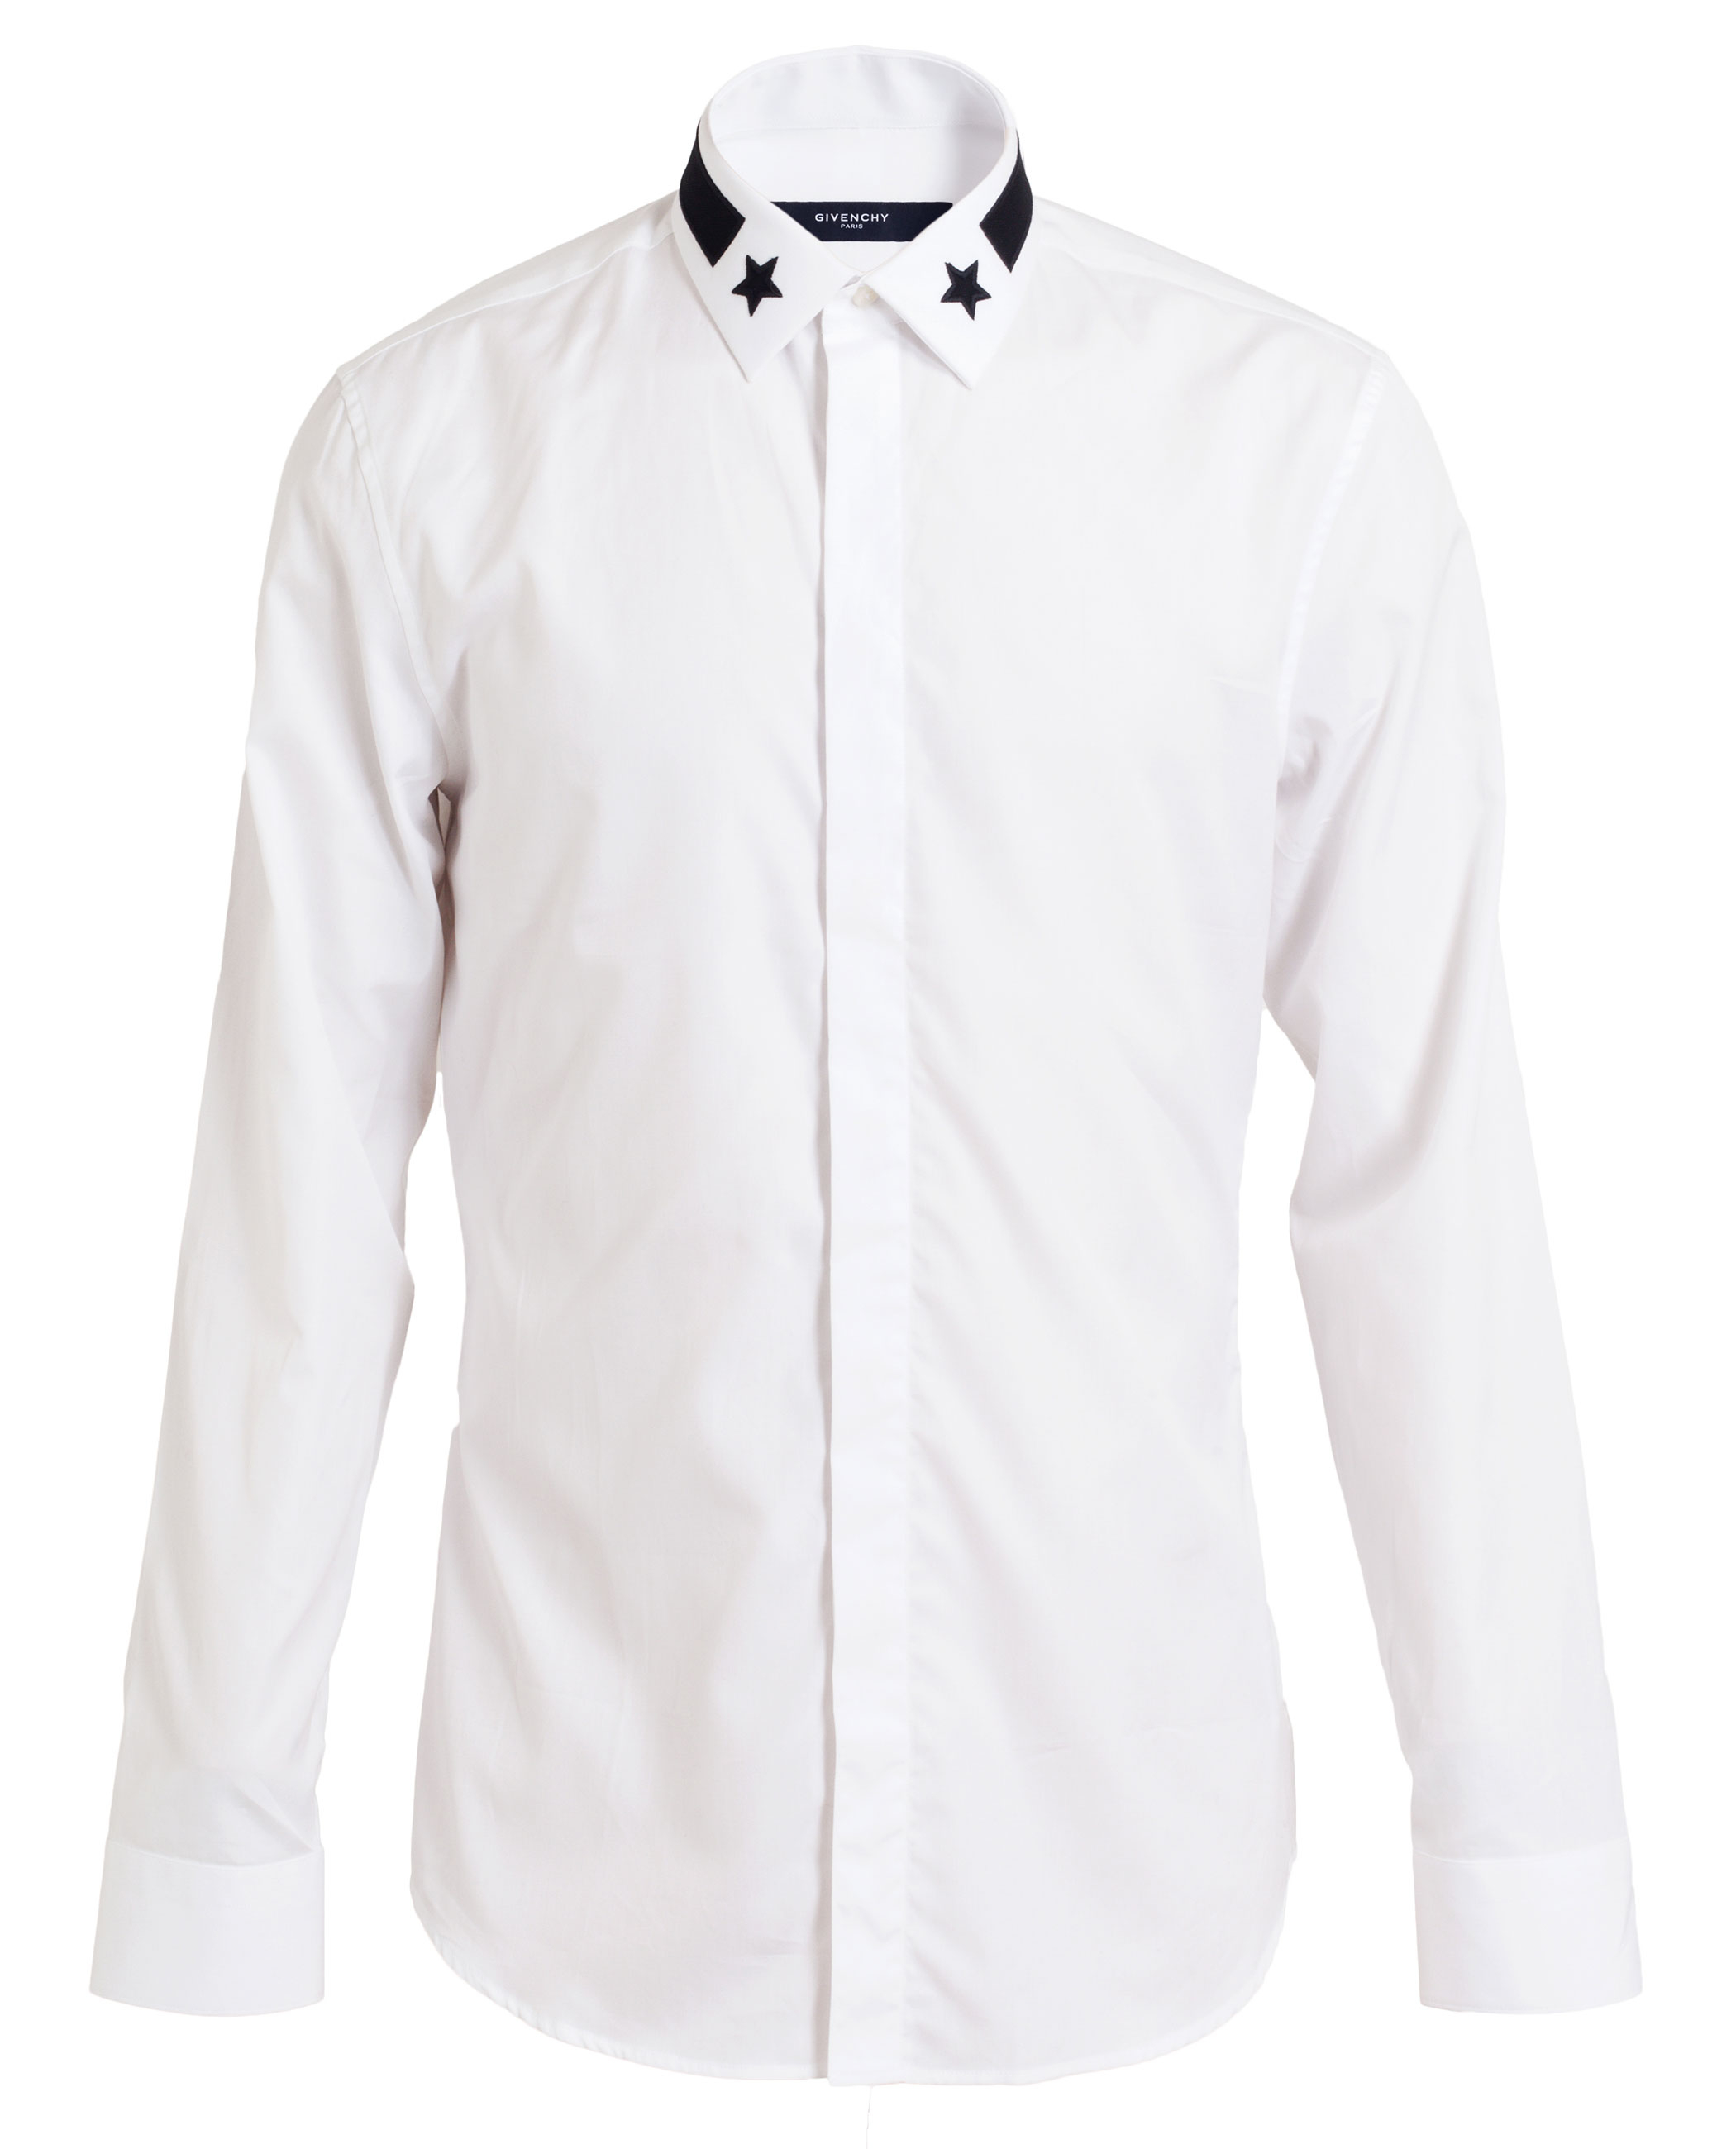 Givenchy star embroidered tailored cotton shirt in white for Givenchy 5 star shirt